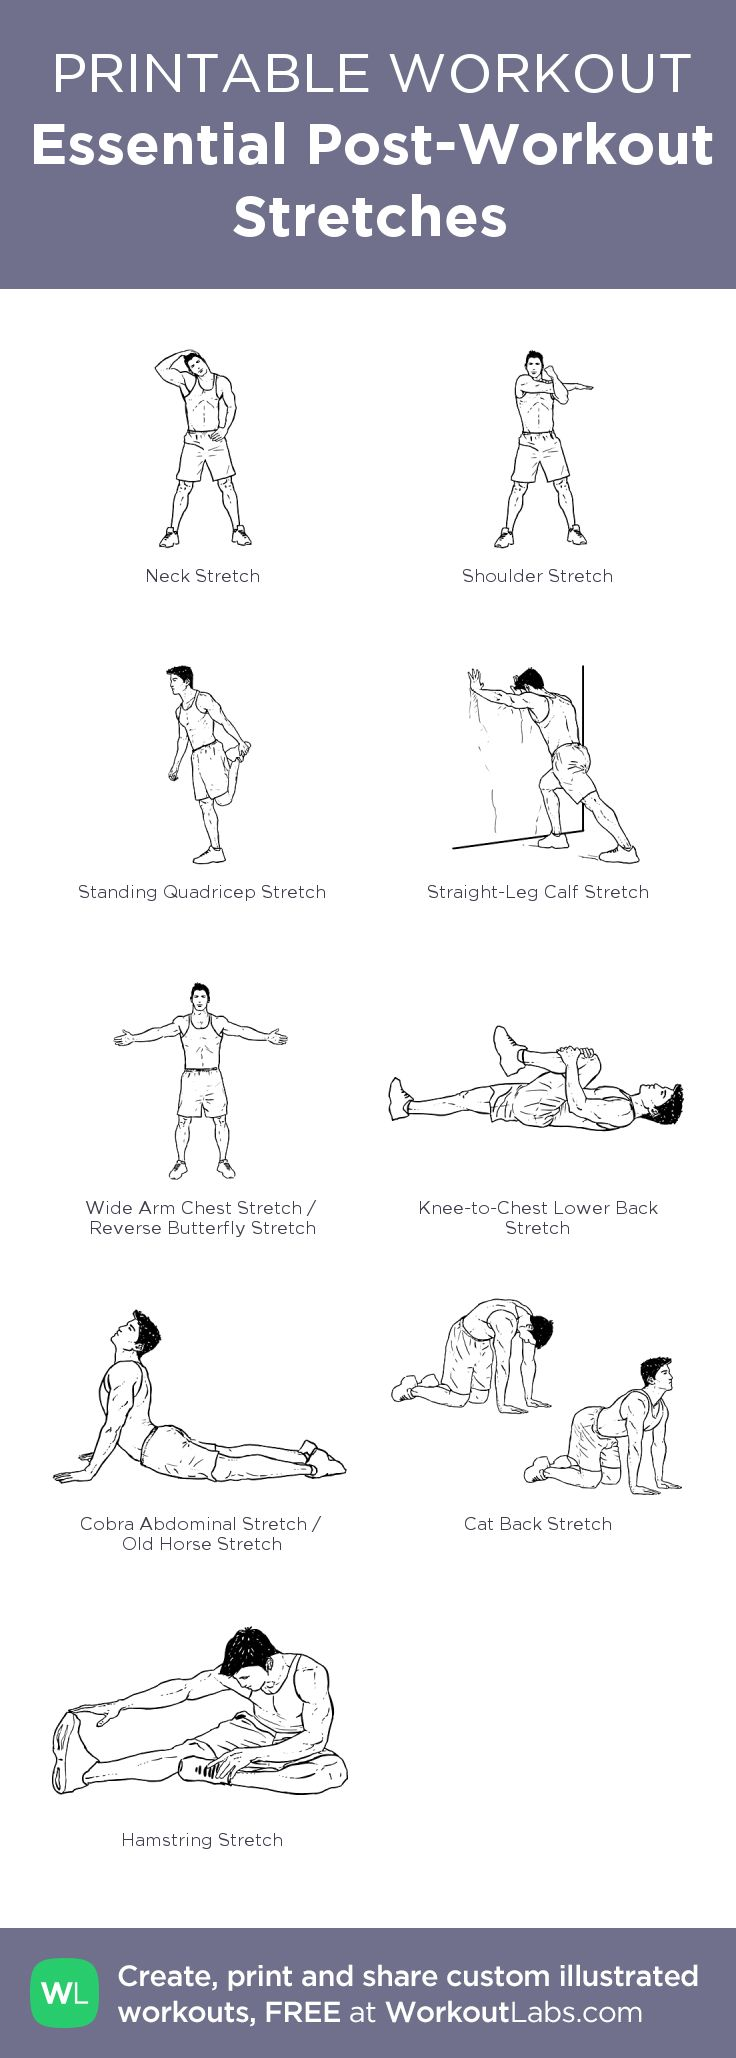 Essential Post-Workout Stretches – my custom workout created at WorkoutLabs.com • Click through to download as printable PDF! #customworkout